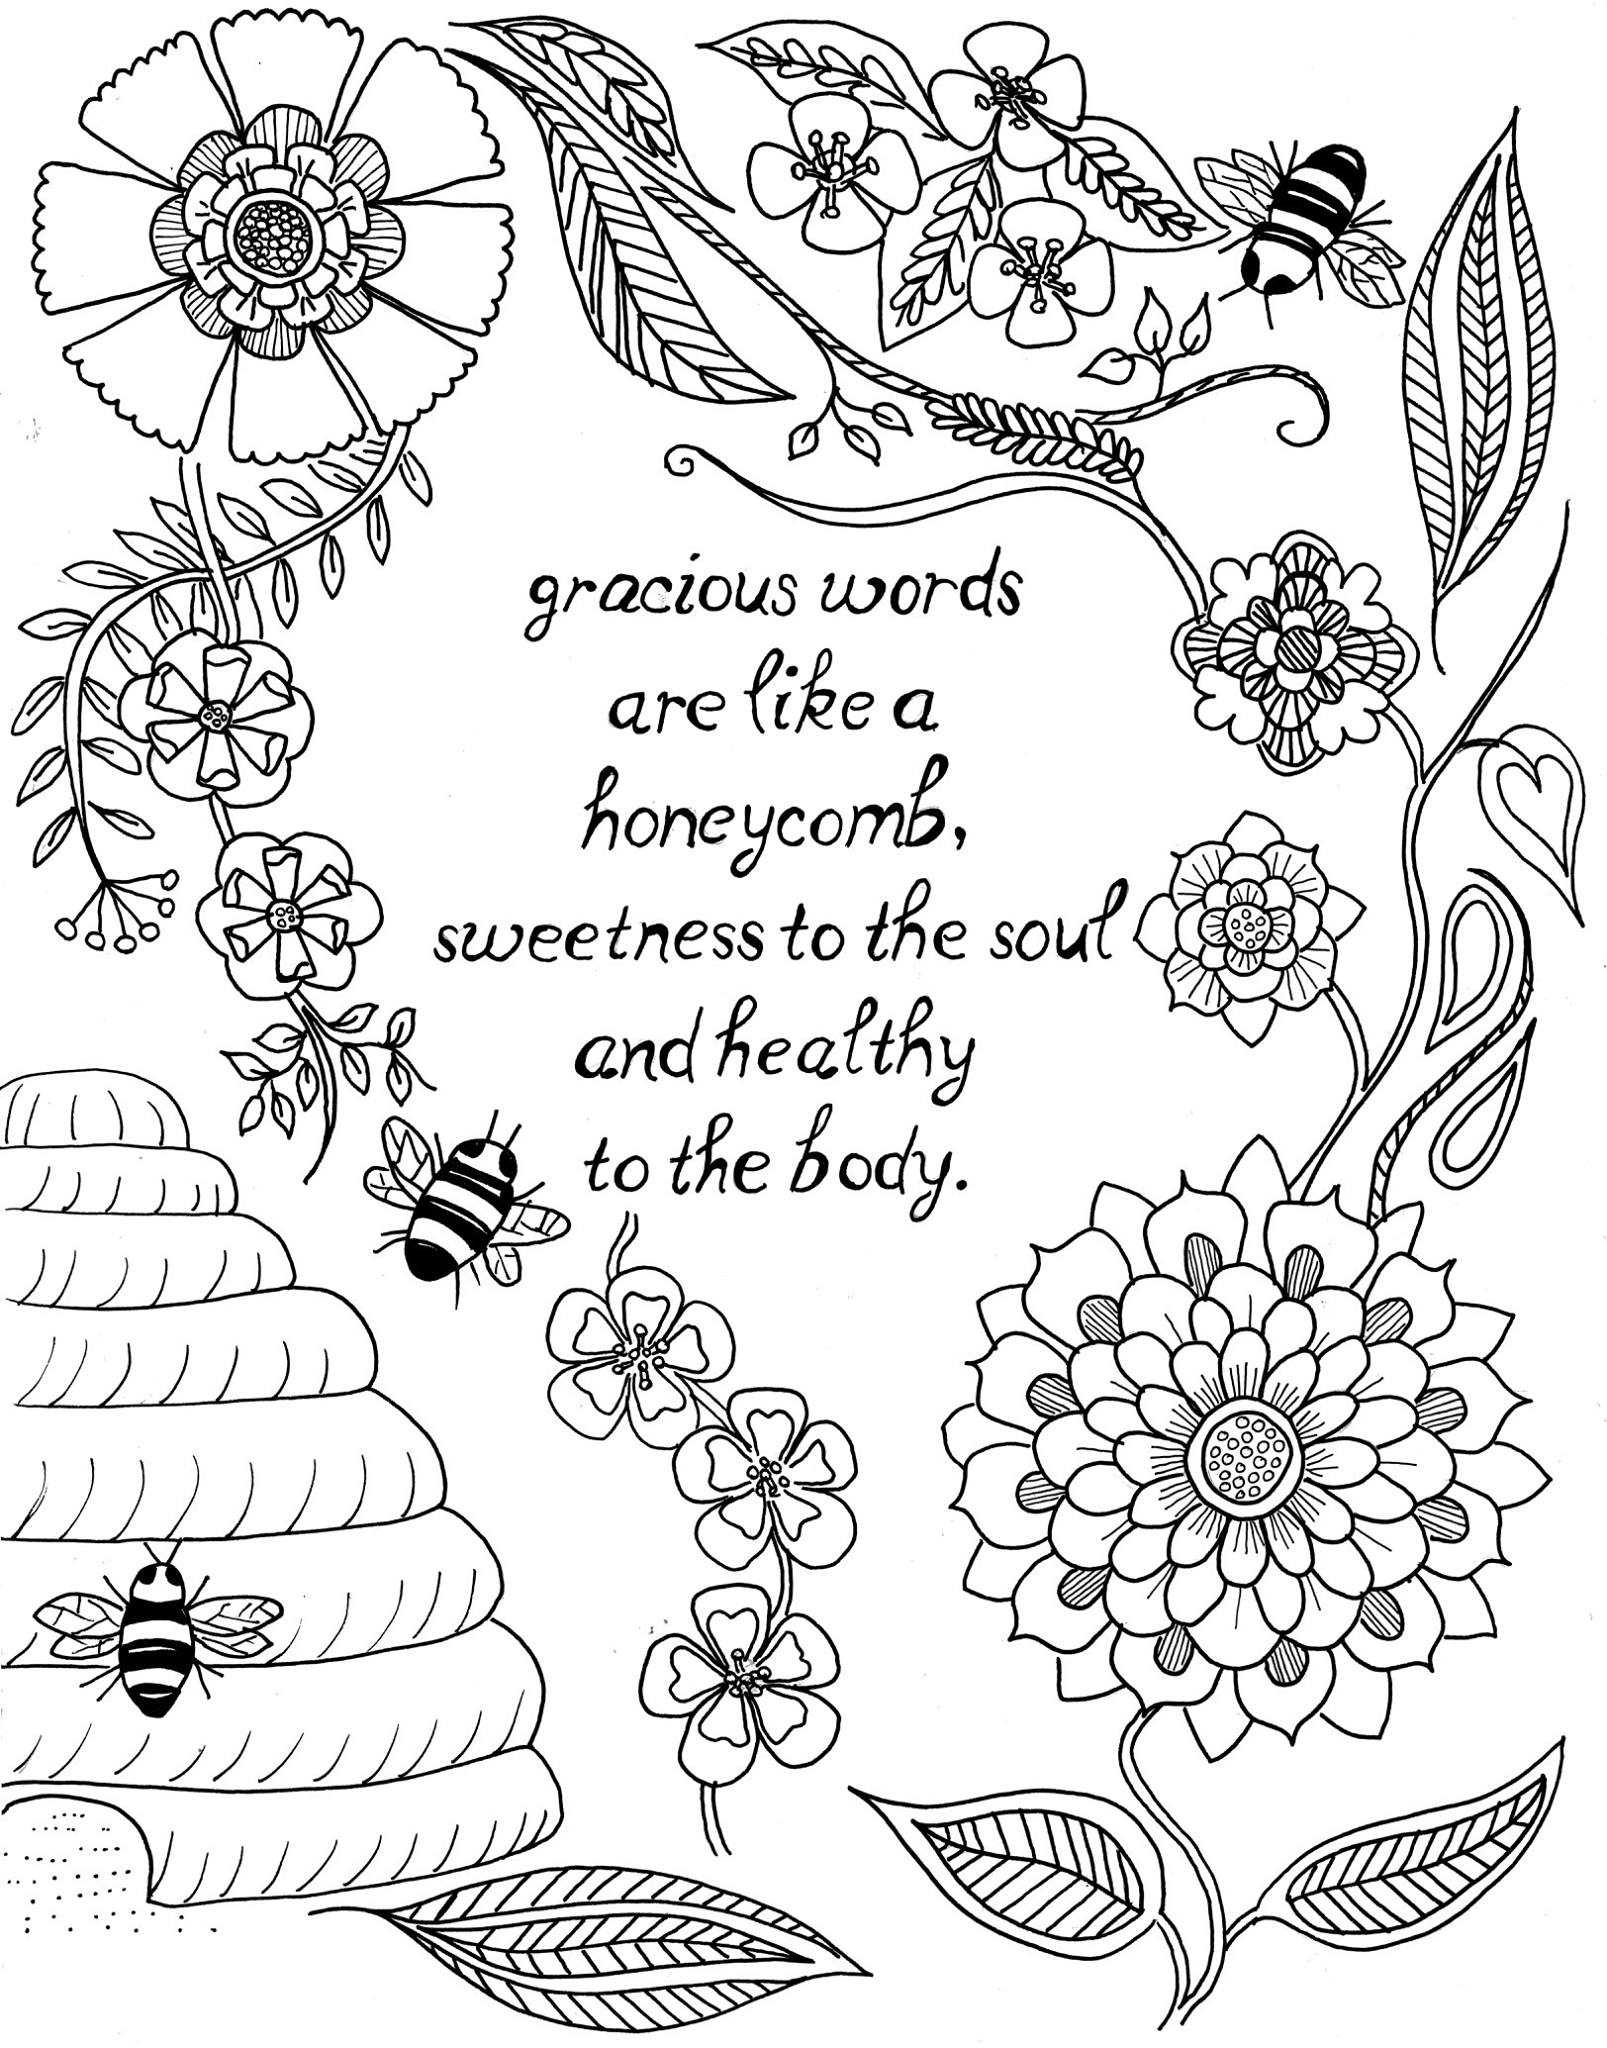 Coloring Pages ~ Positive Quotes Coloring Pages Printable - Free Printable Inspirational Coloring Pages